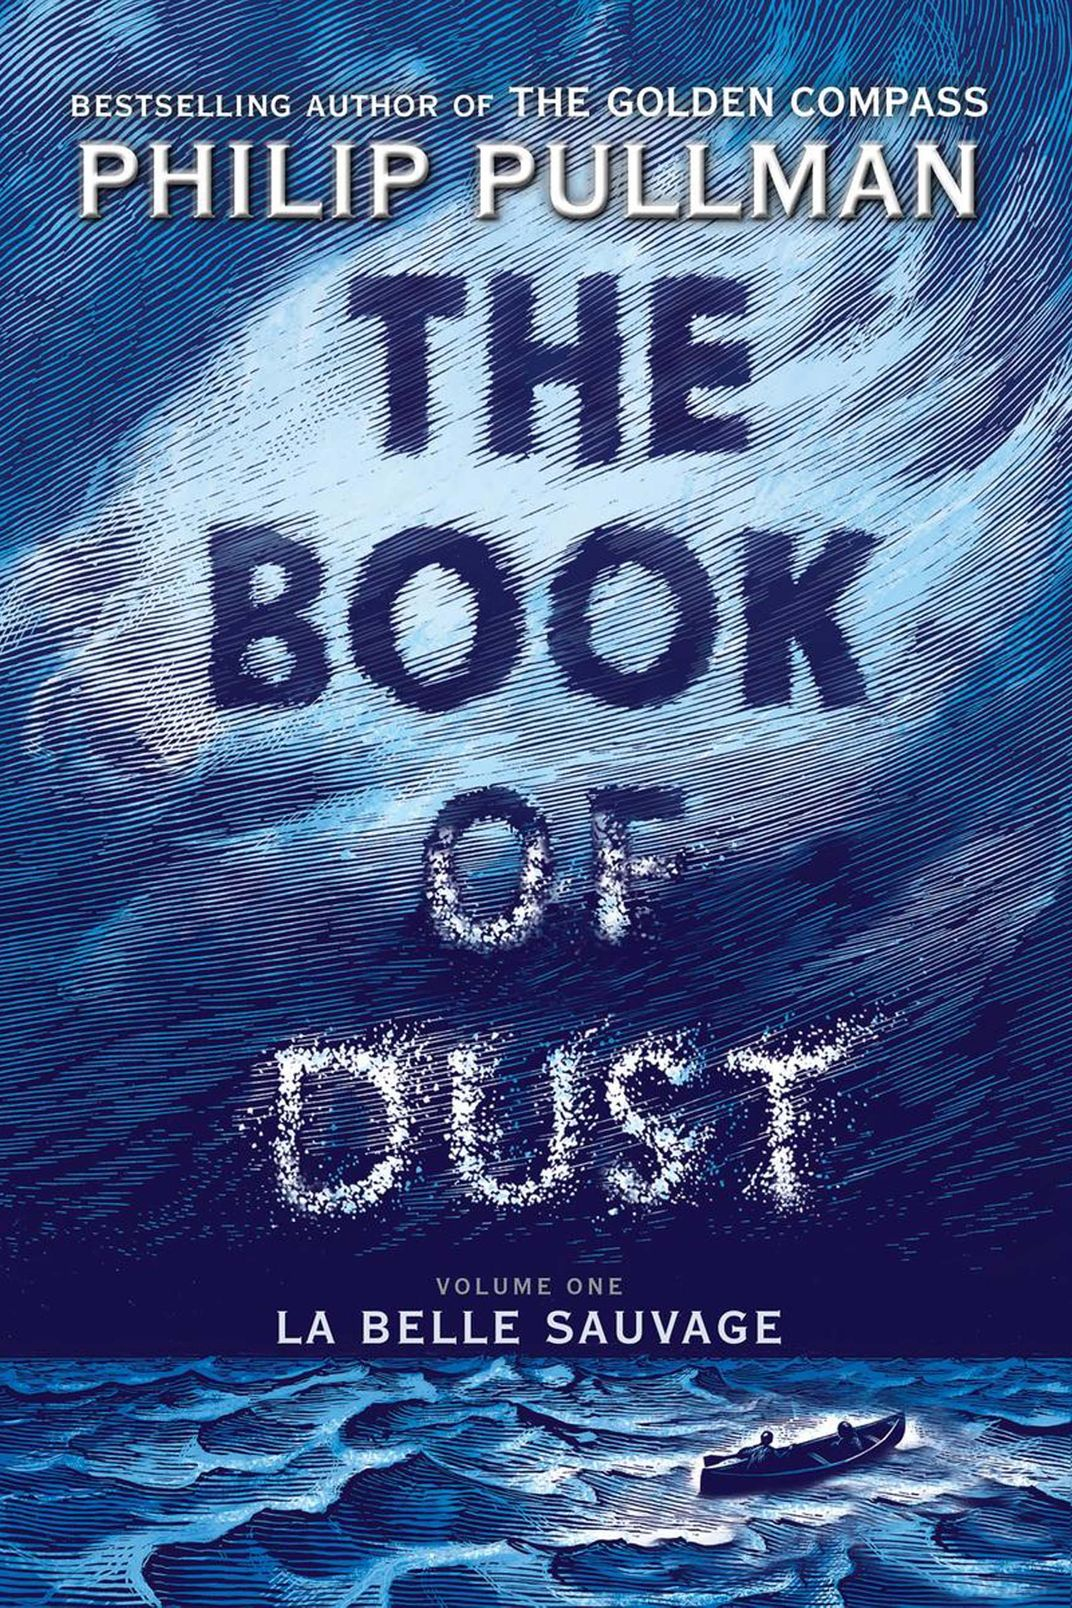 The Book of Dust: La Belle Sauvage, by Philip Pullman